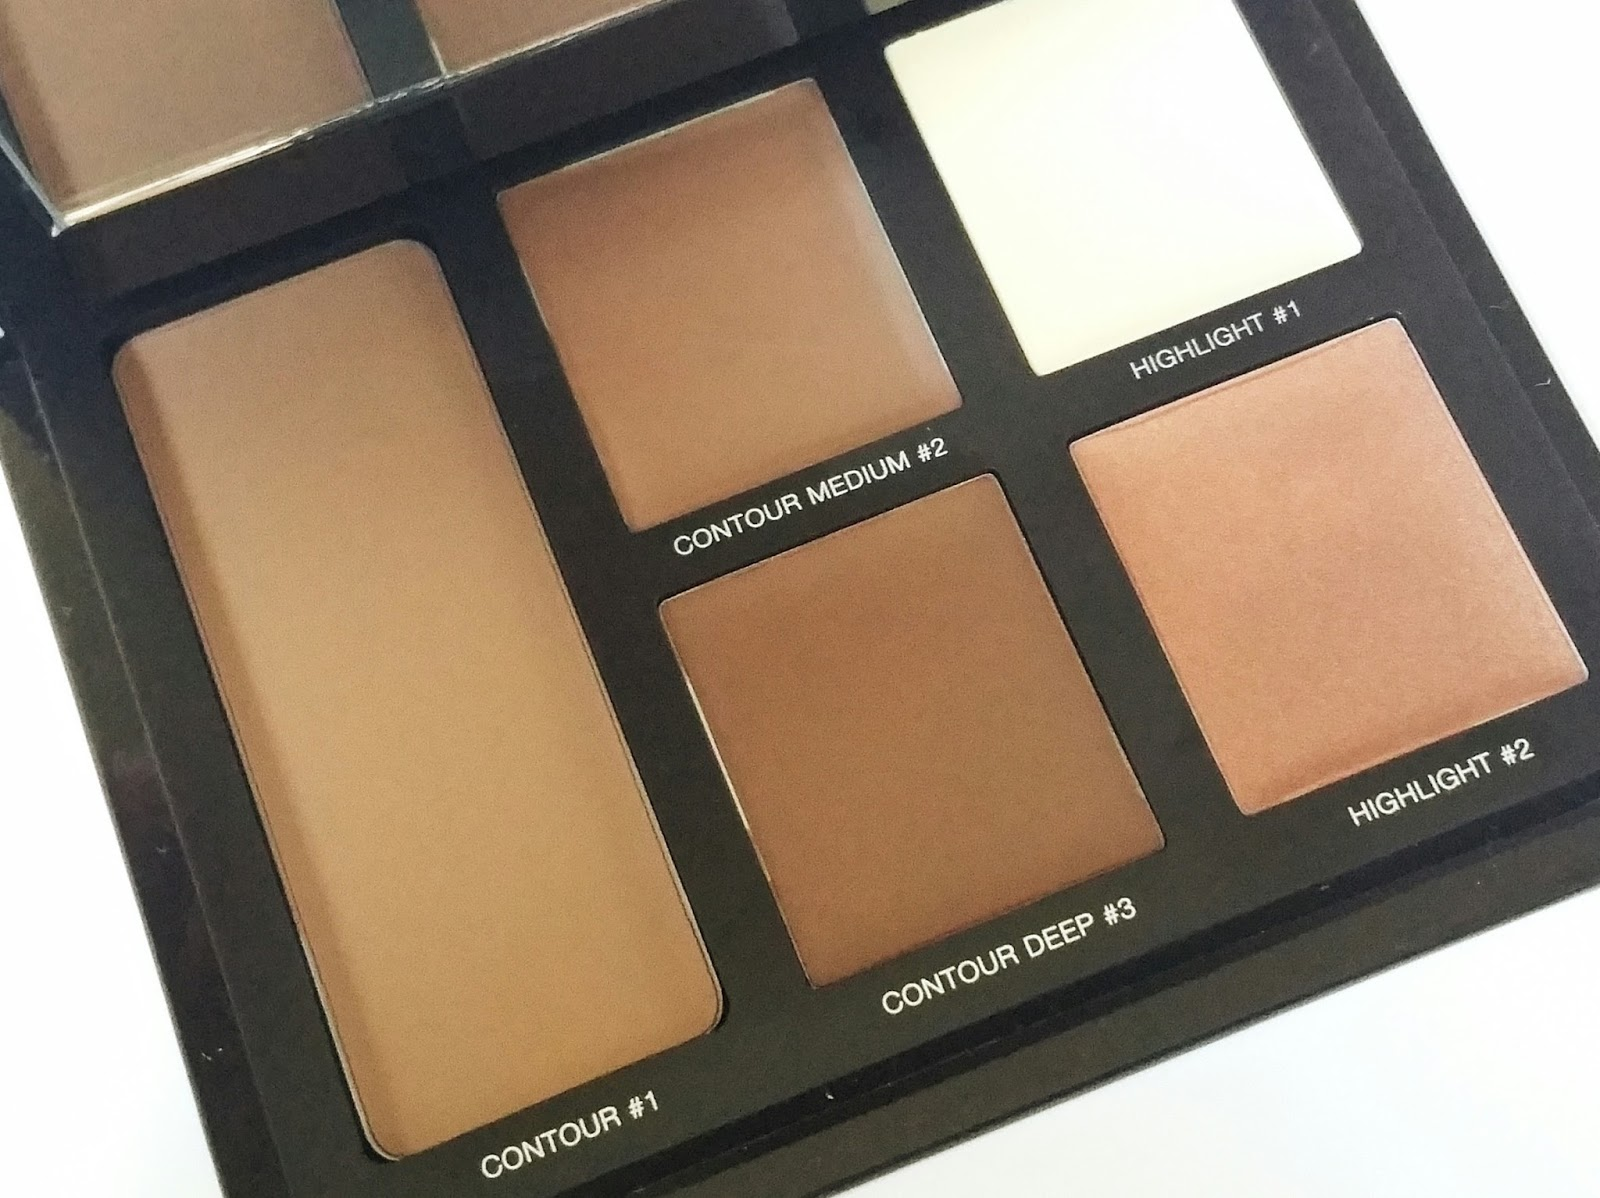 82804208d96 The Laura Mercier Contouring Palette is perfect for make up kits as they  can be used on a range of different skin tones. I find creams to be  incredibly easy ...